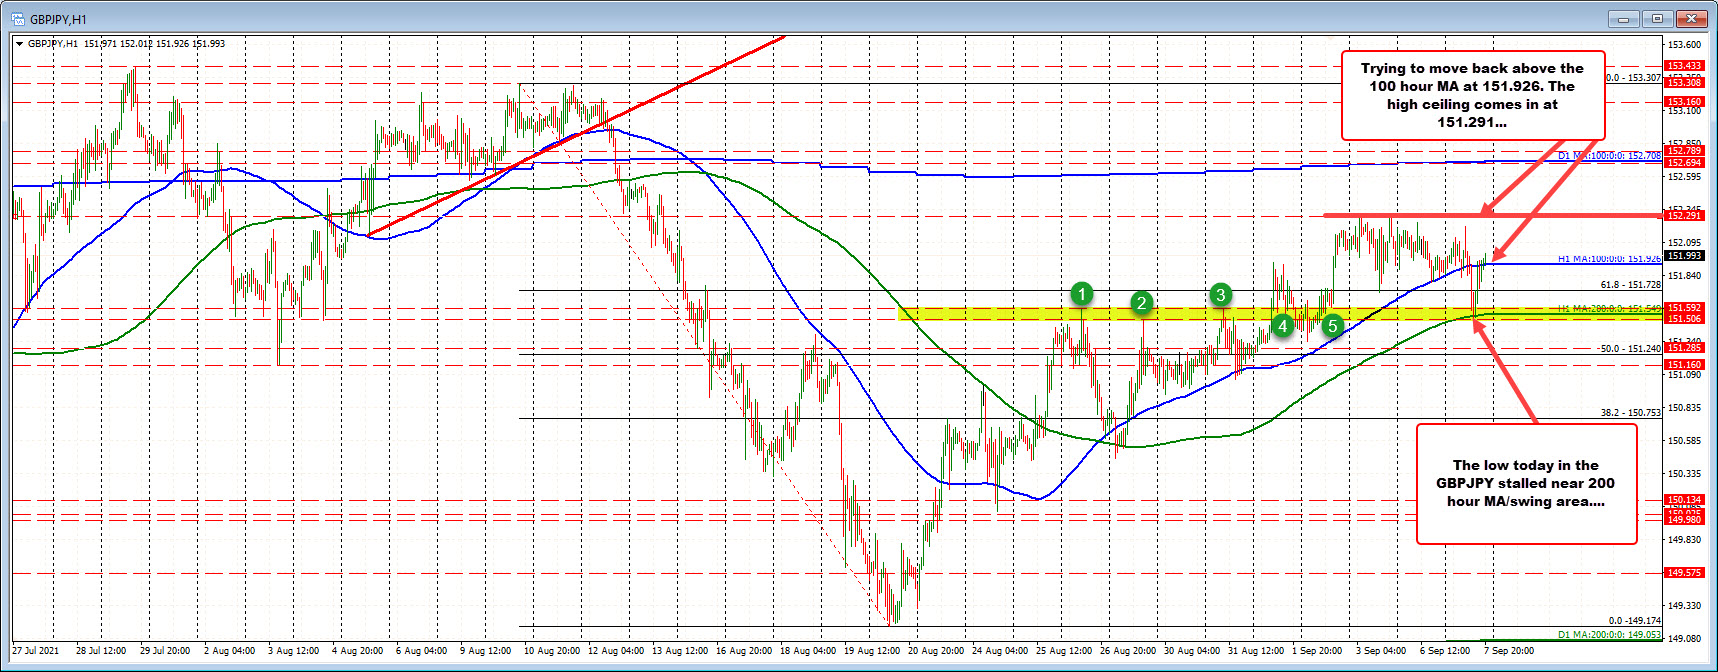 Swing area andrising 200 hour moving average helped tostall the fall today.